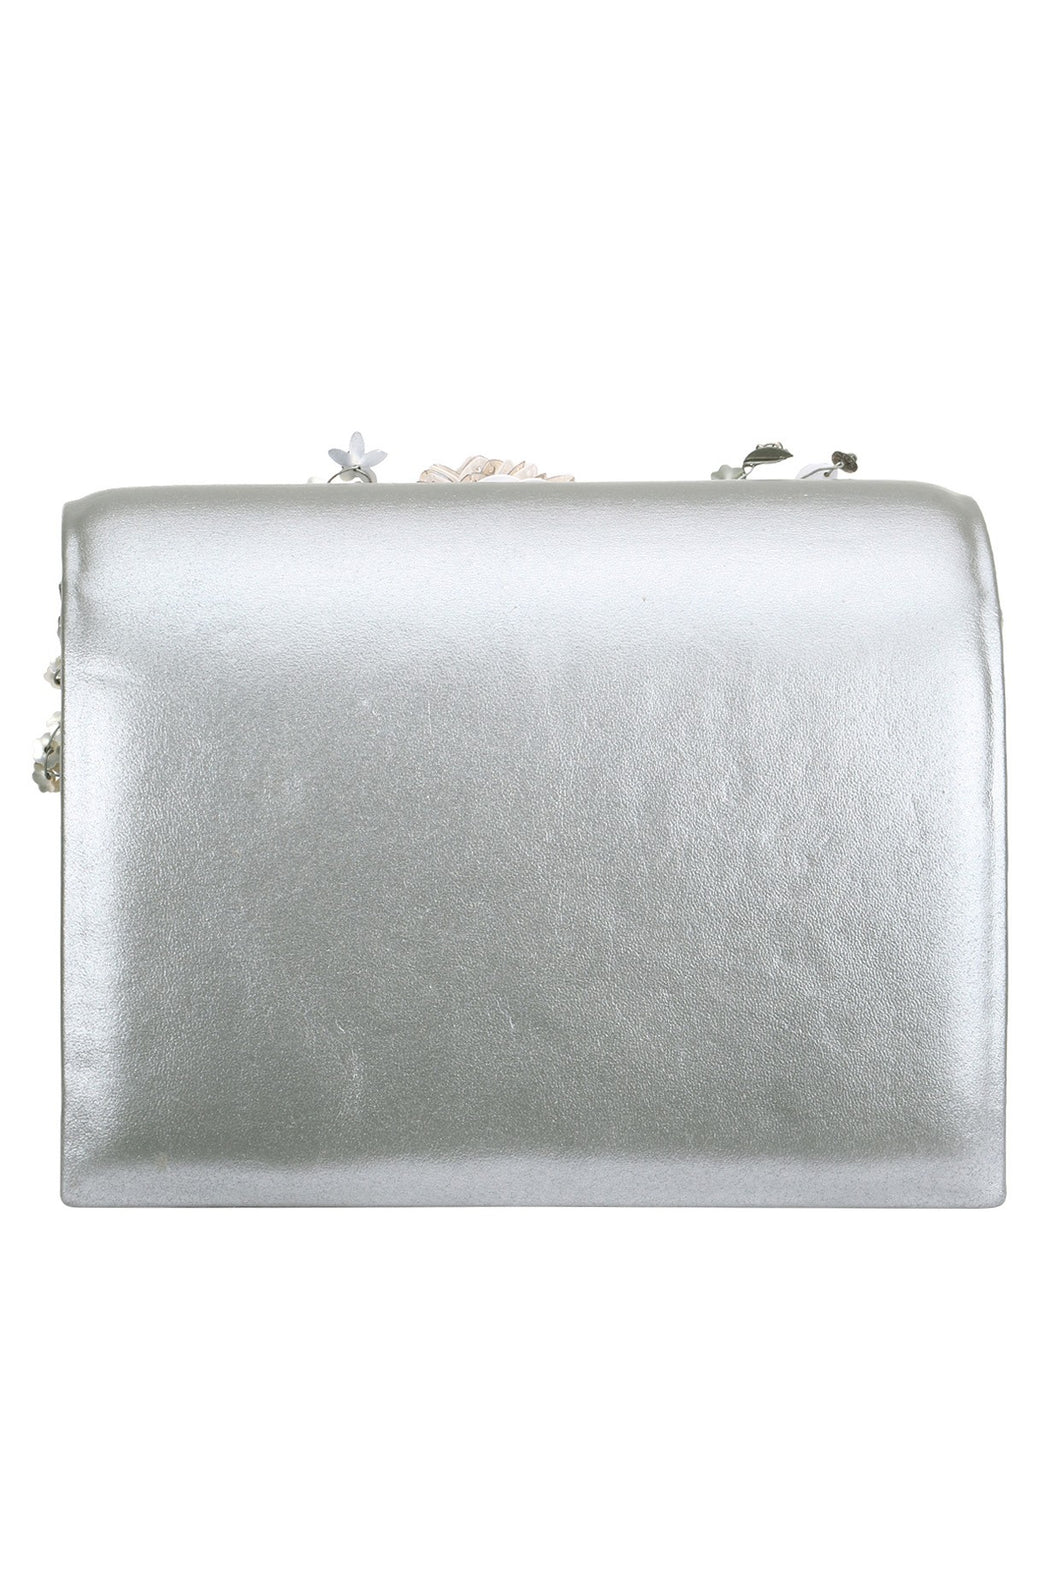 1be72887f7 ... Studio Accessories Grey Crystal and Sequins multicolor floral leather clutch  bag ...